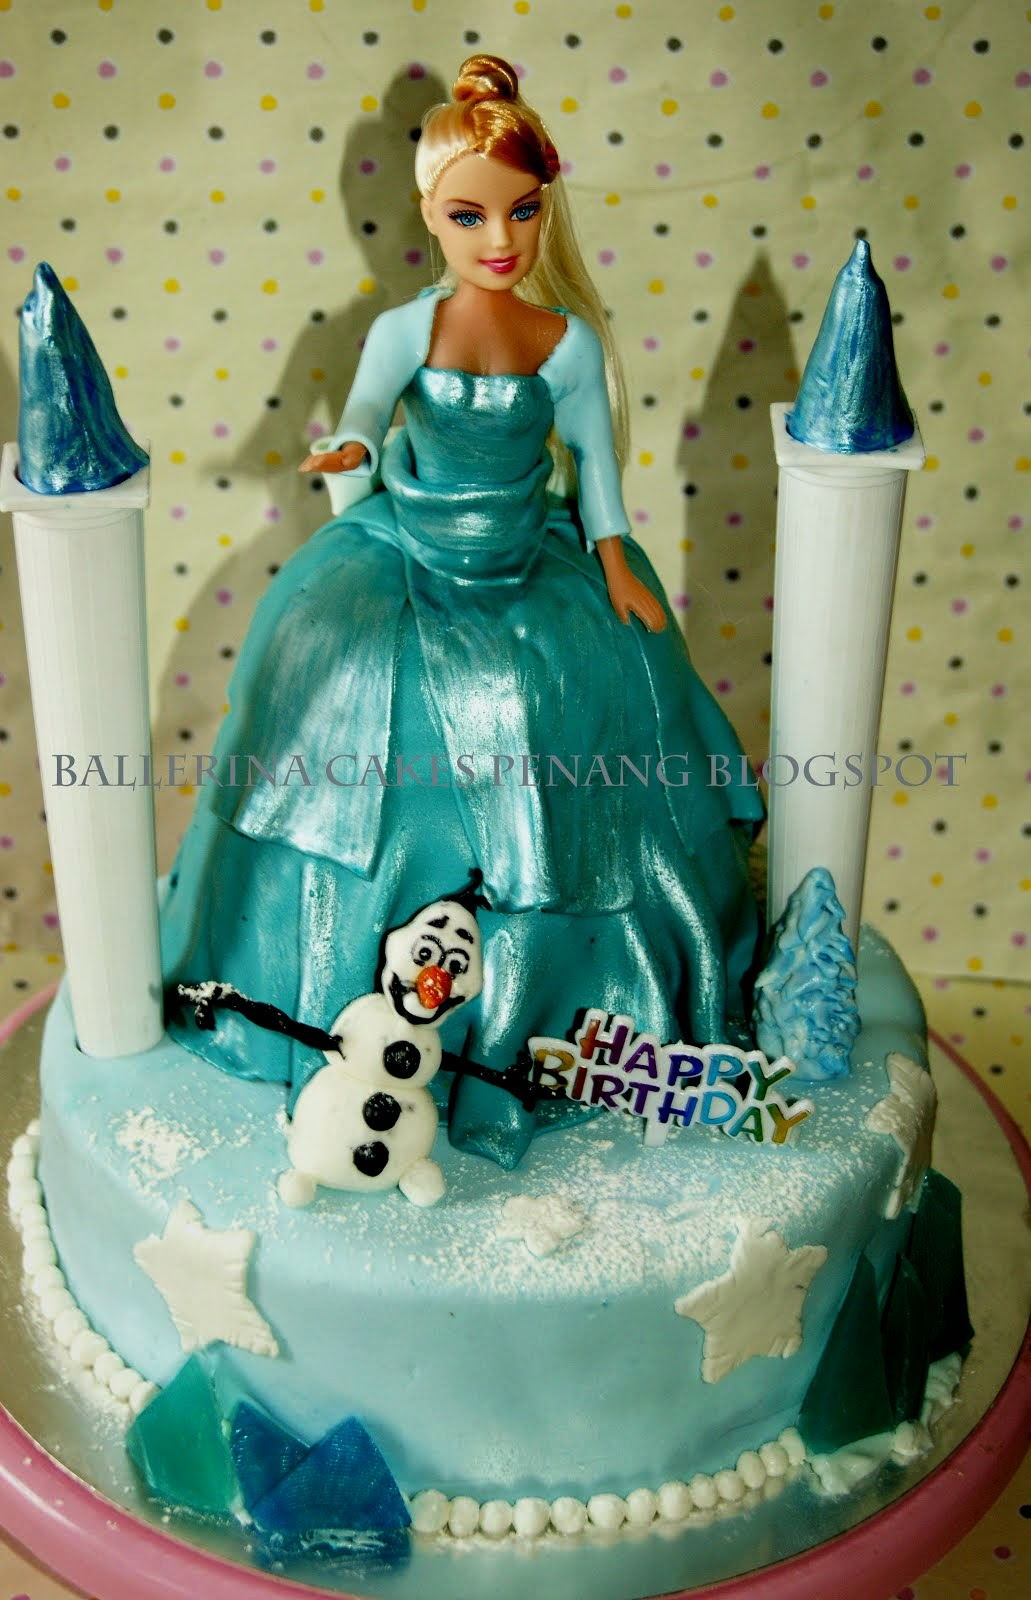 Elsa Disney Frozen Cake. Demo Class 18 oct 2014